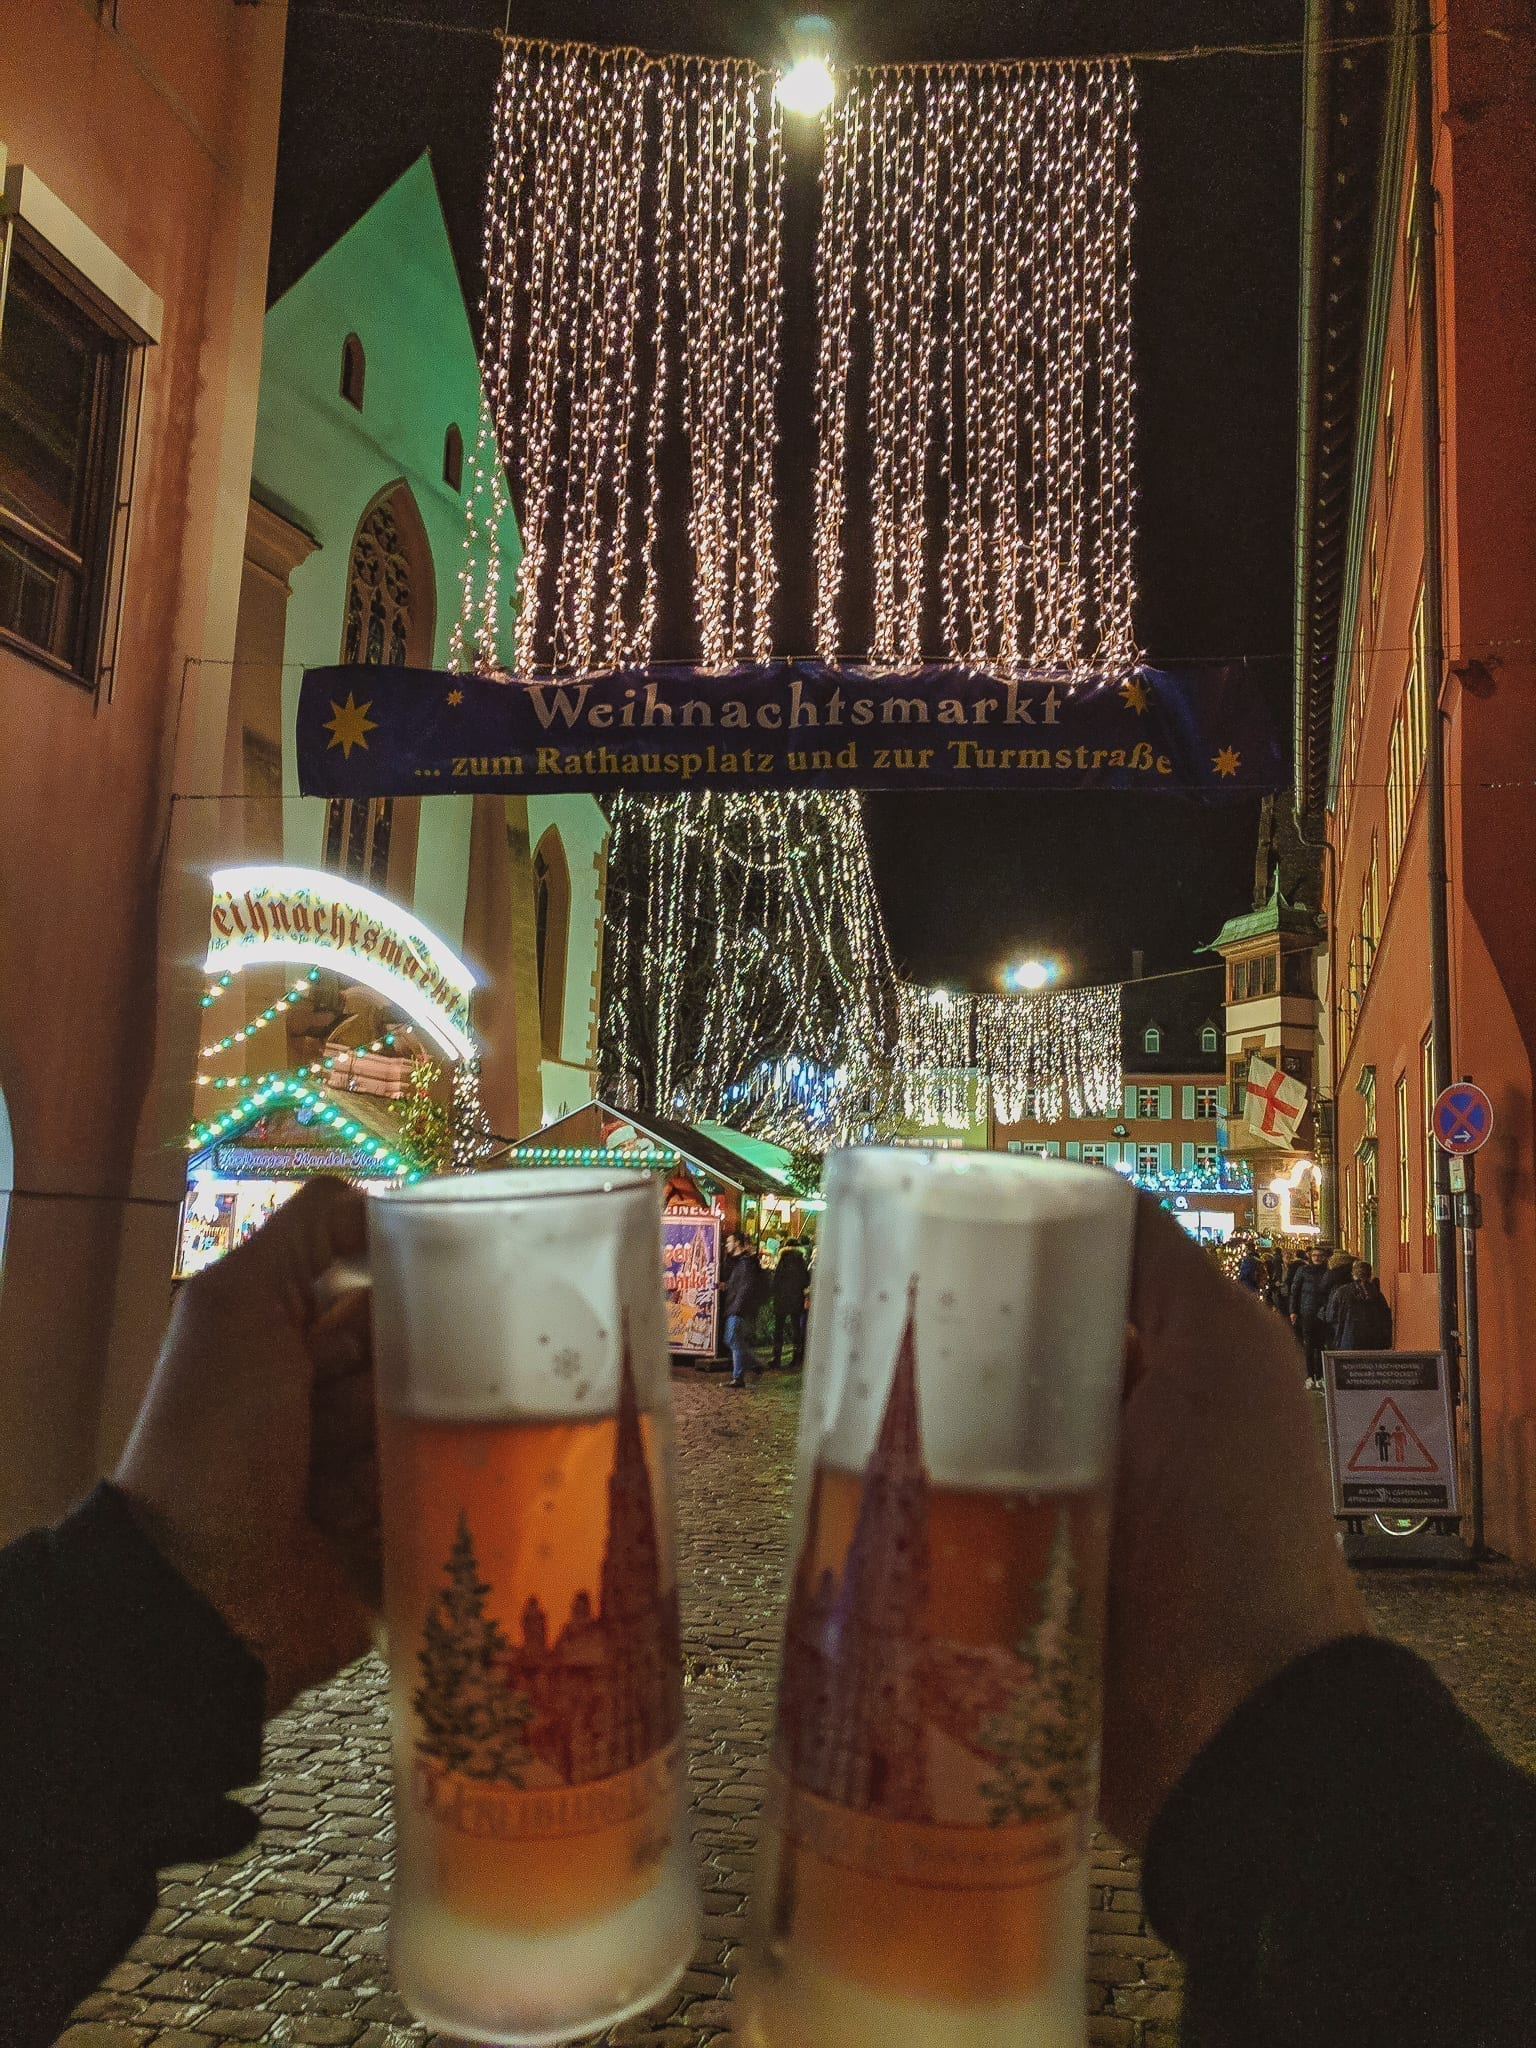 Glühwein (mulled wine) looking onto a famous German Christmas Market.